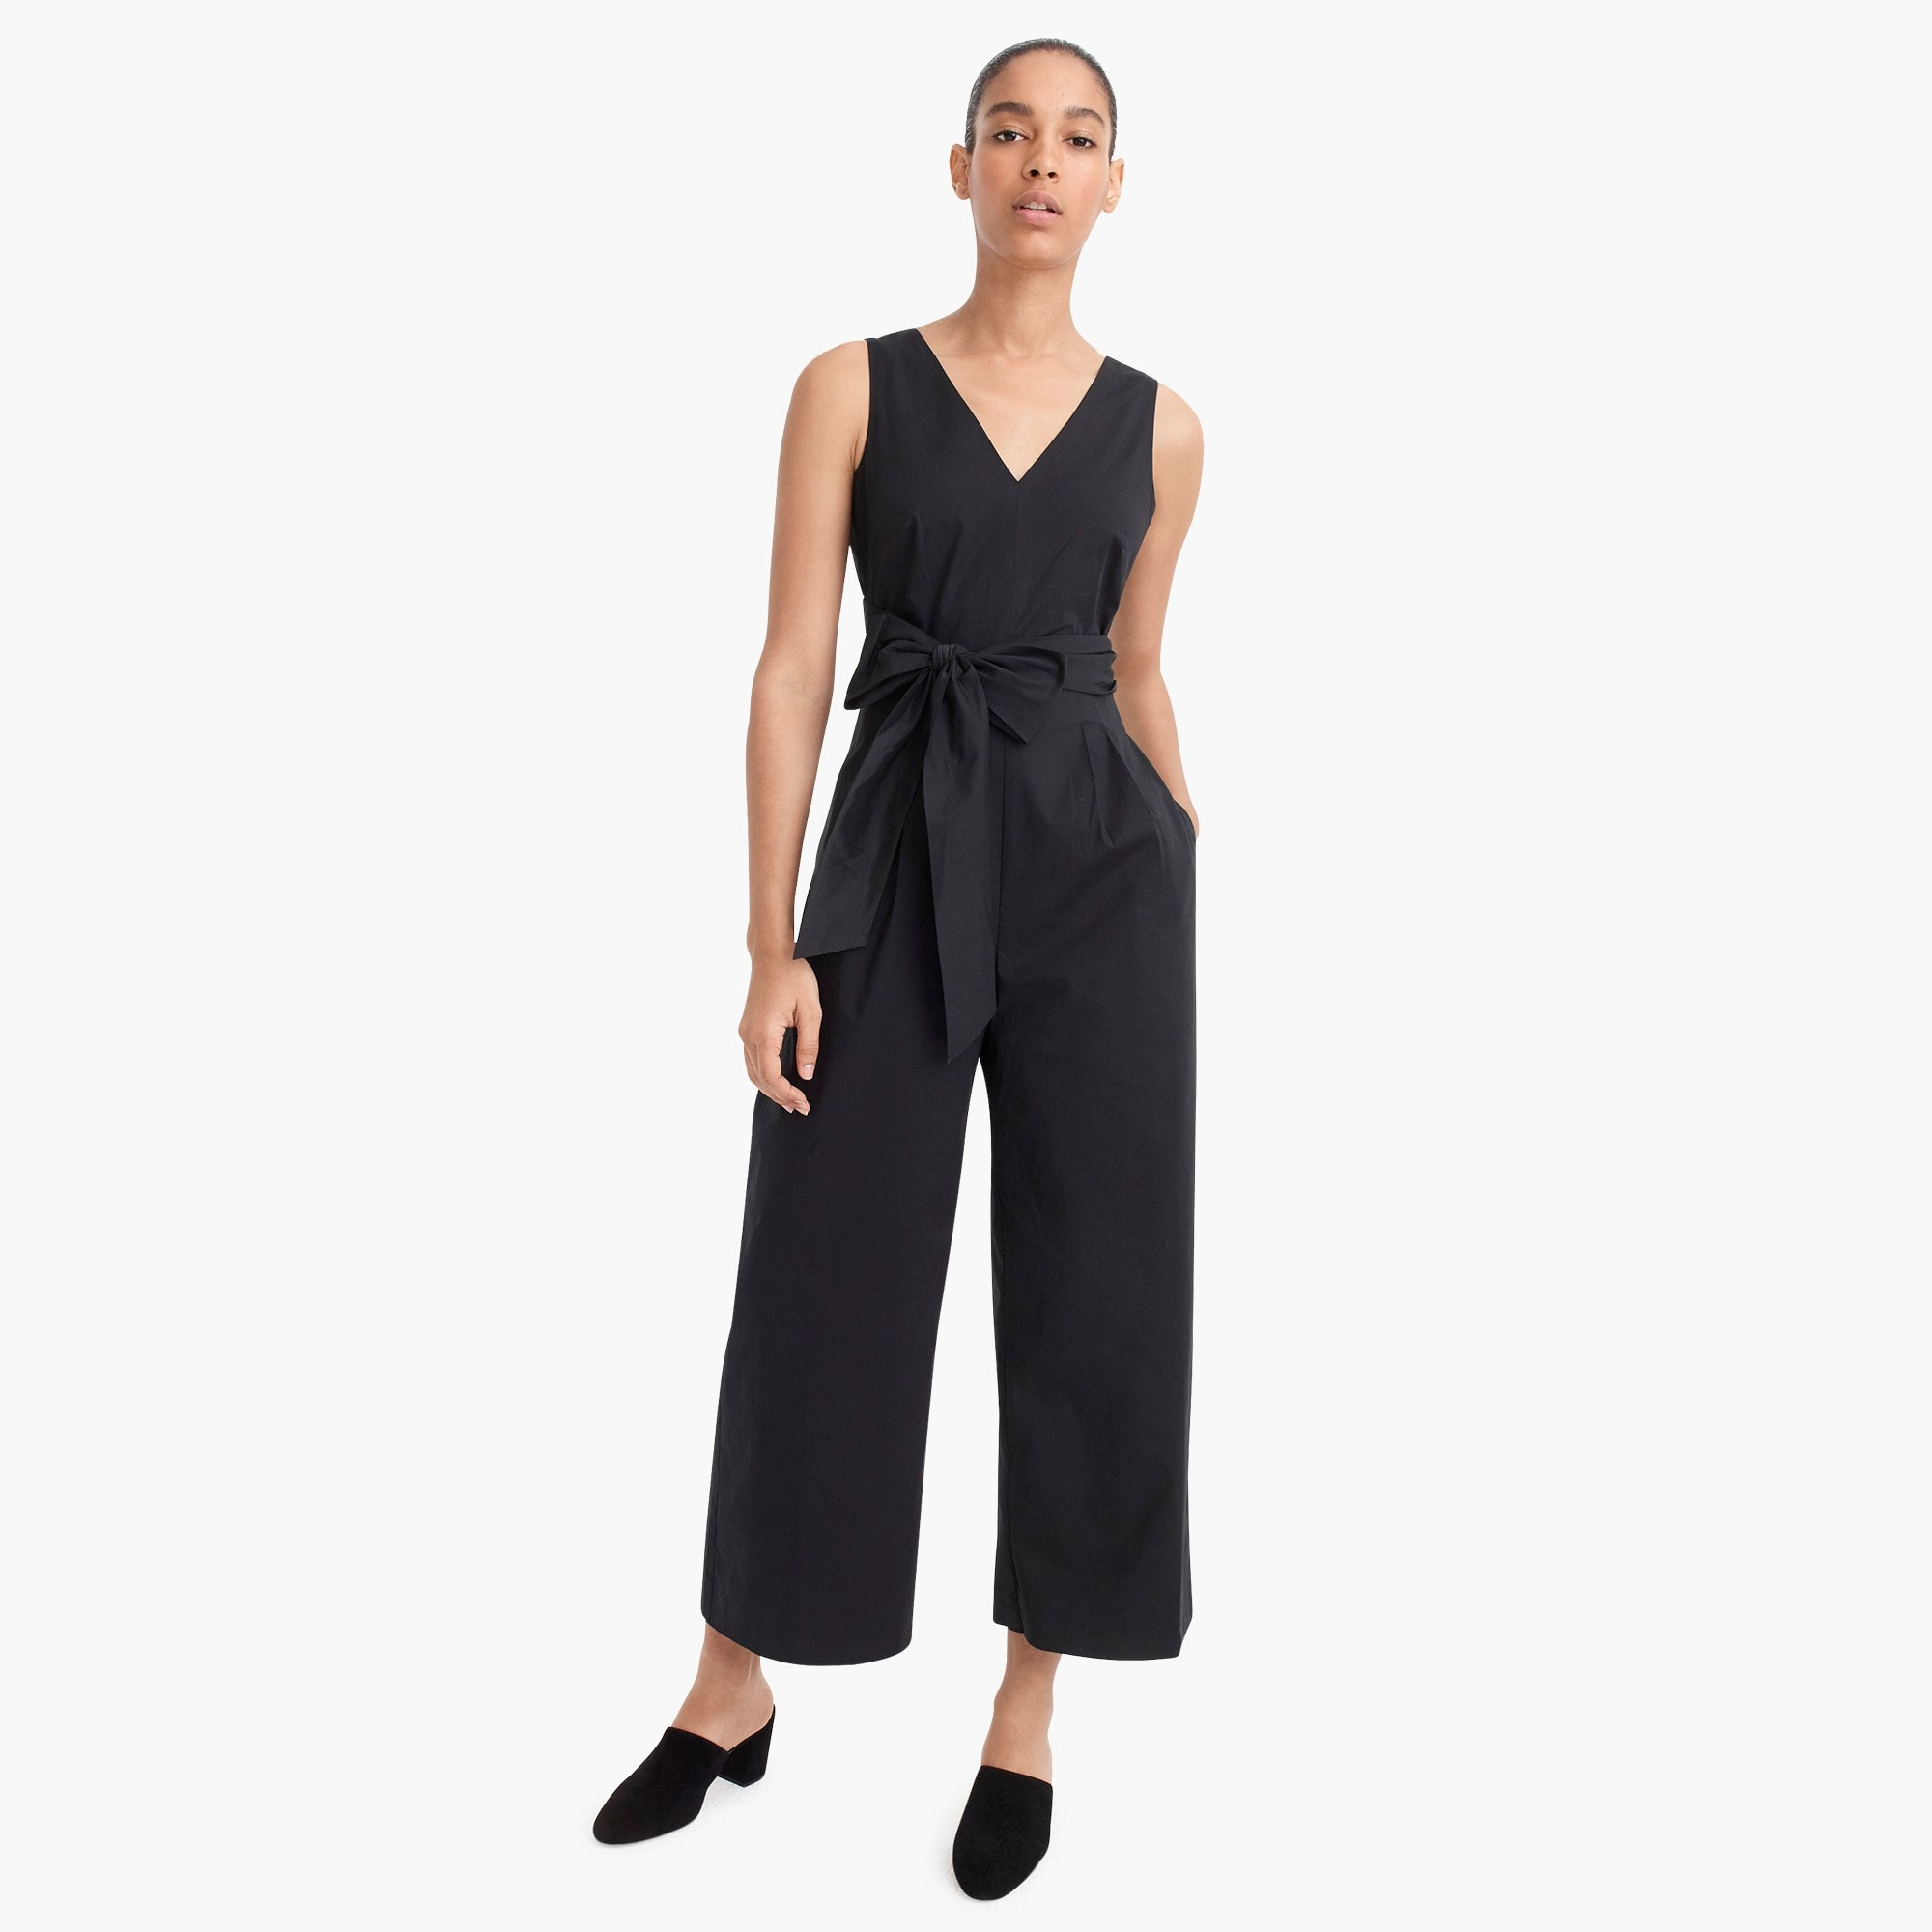 Image 4 for Wrap-tie jumpsuit in stretch poplin